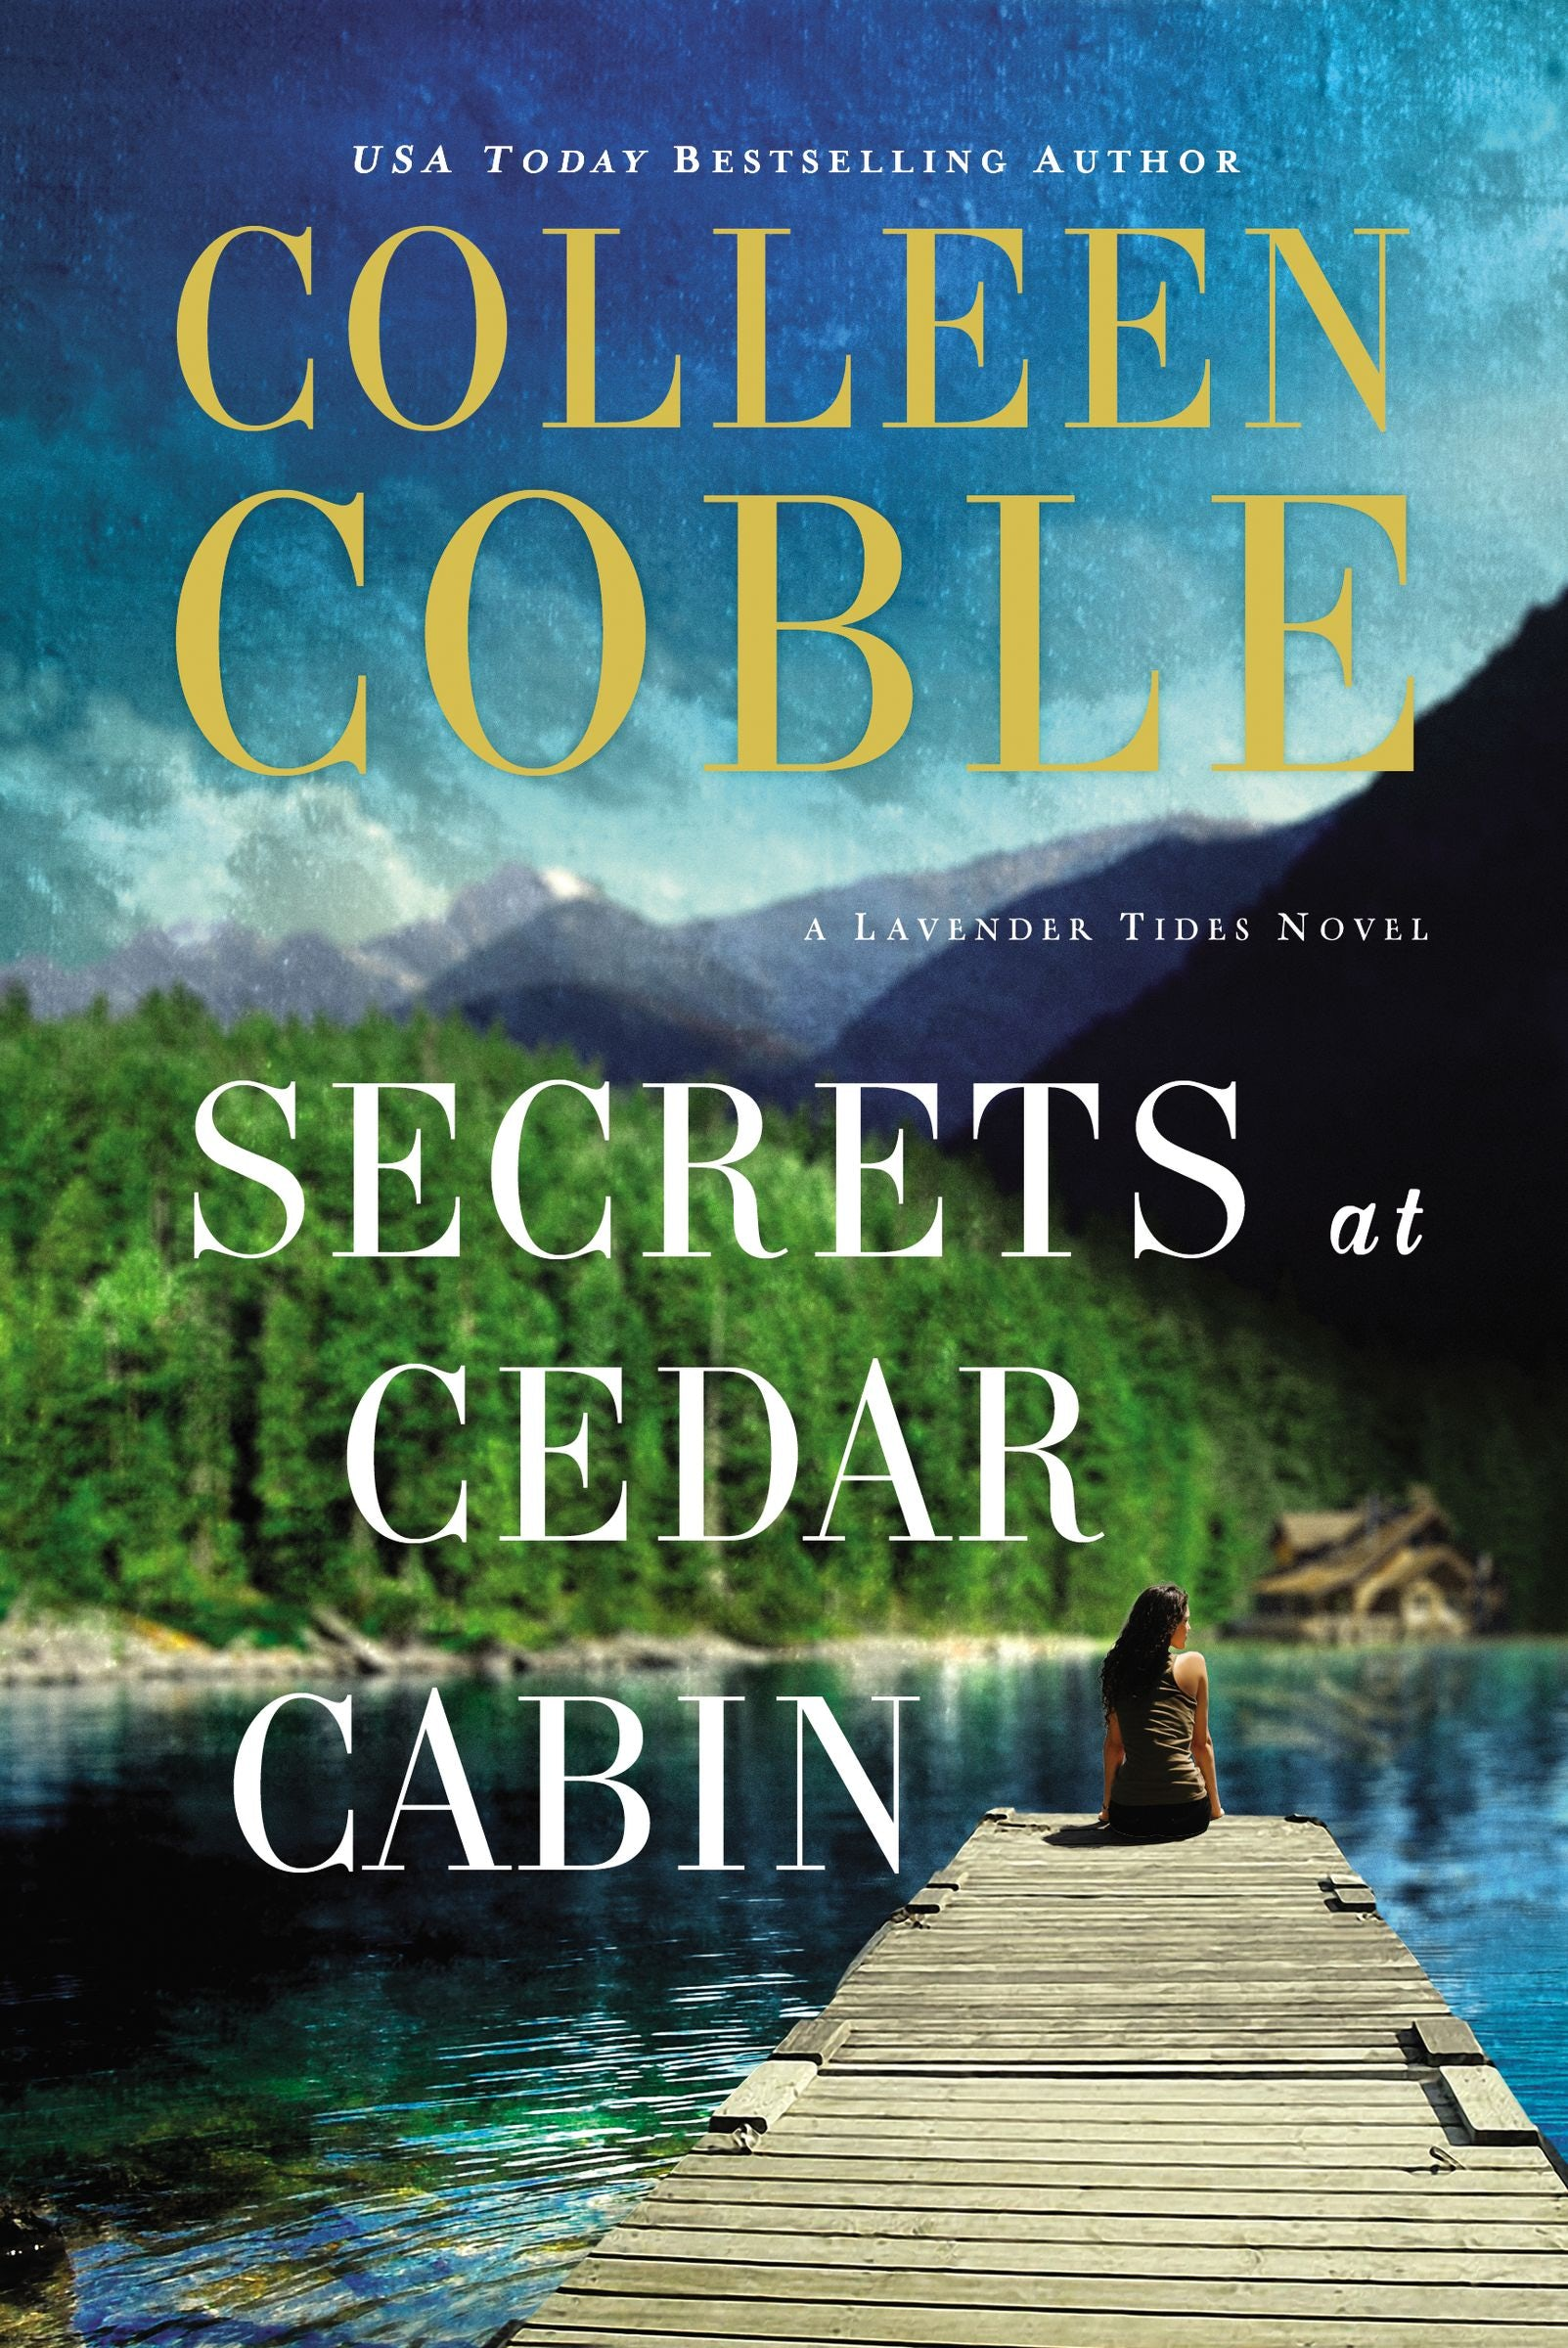 Book review of Secrets at Cedar Cabin by Colleen Coble (Thomas Nelson) by papertapepins